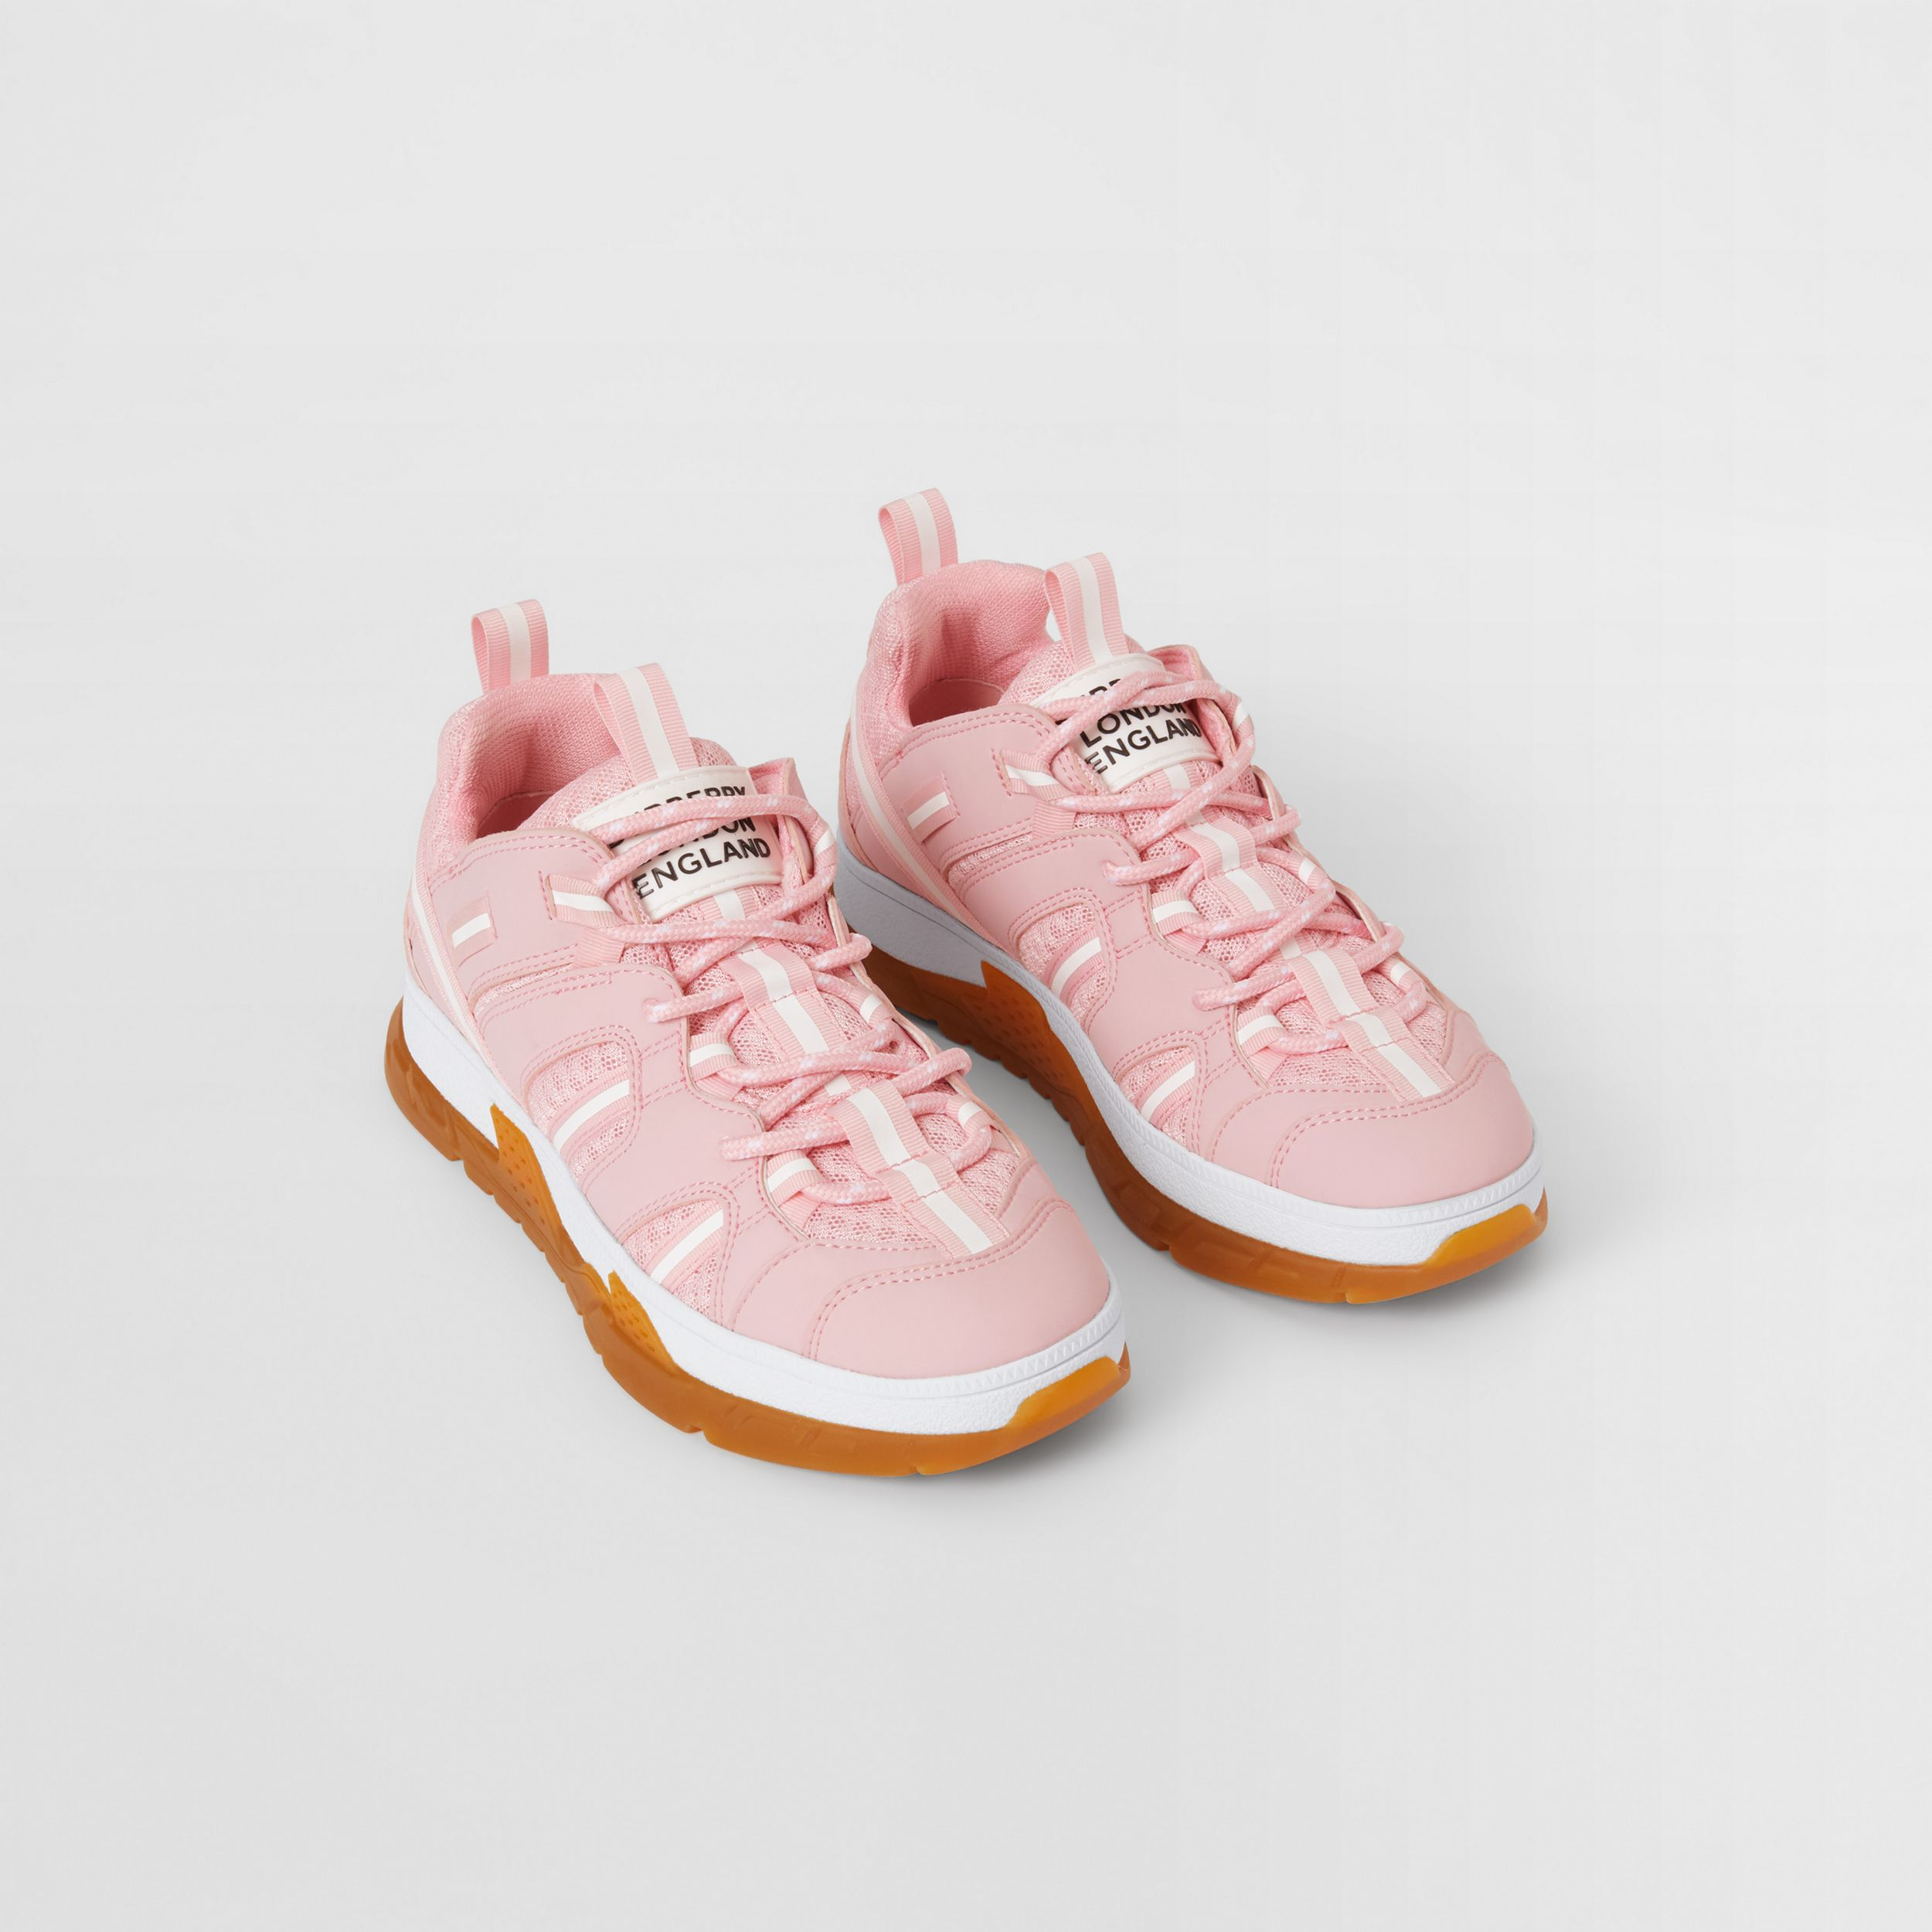 Nylon and Mesh Union Sneakers in Candy Pink - Children | Burberry Canada - 1